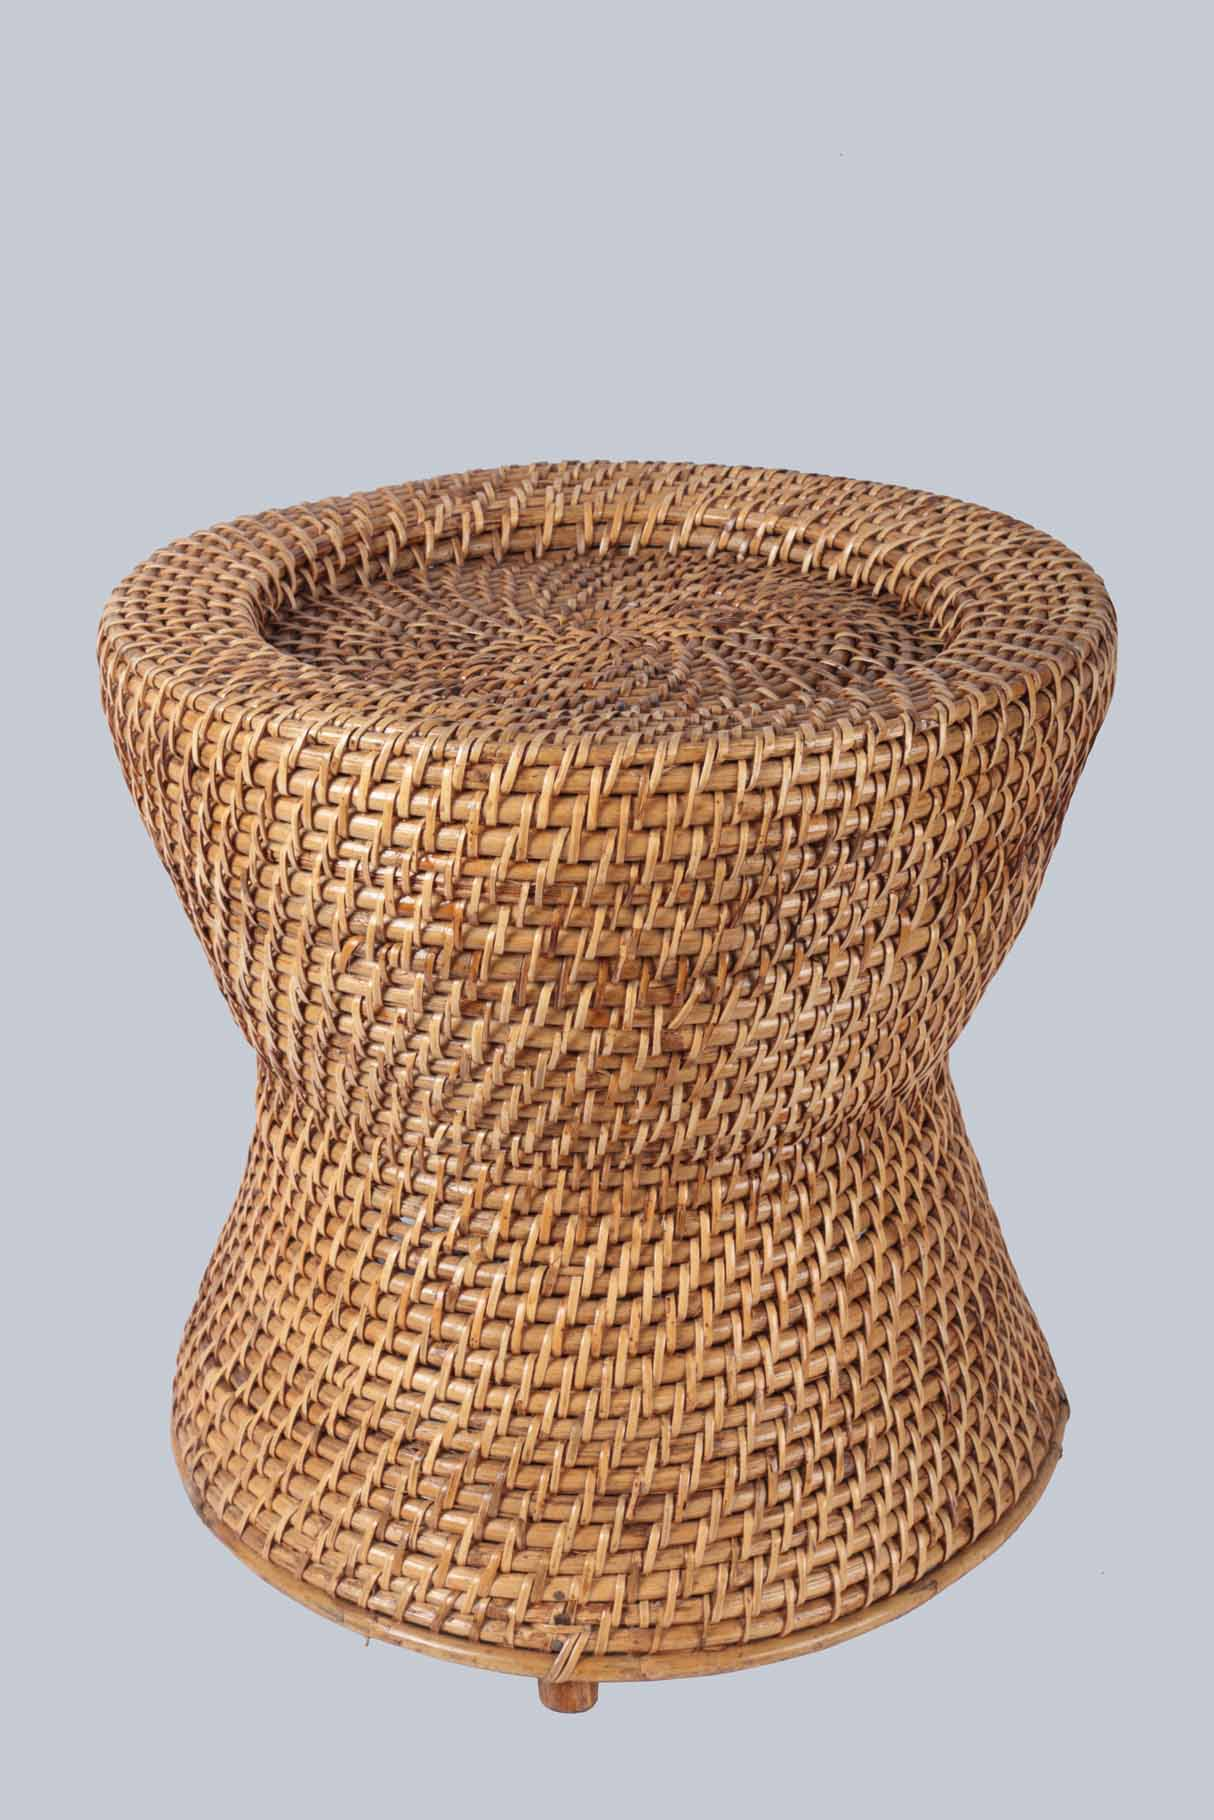 Cane Furniture India Cane Furniture India Suppliers and